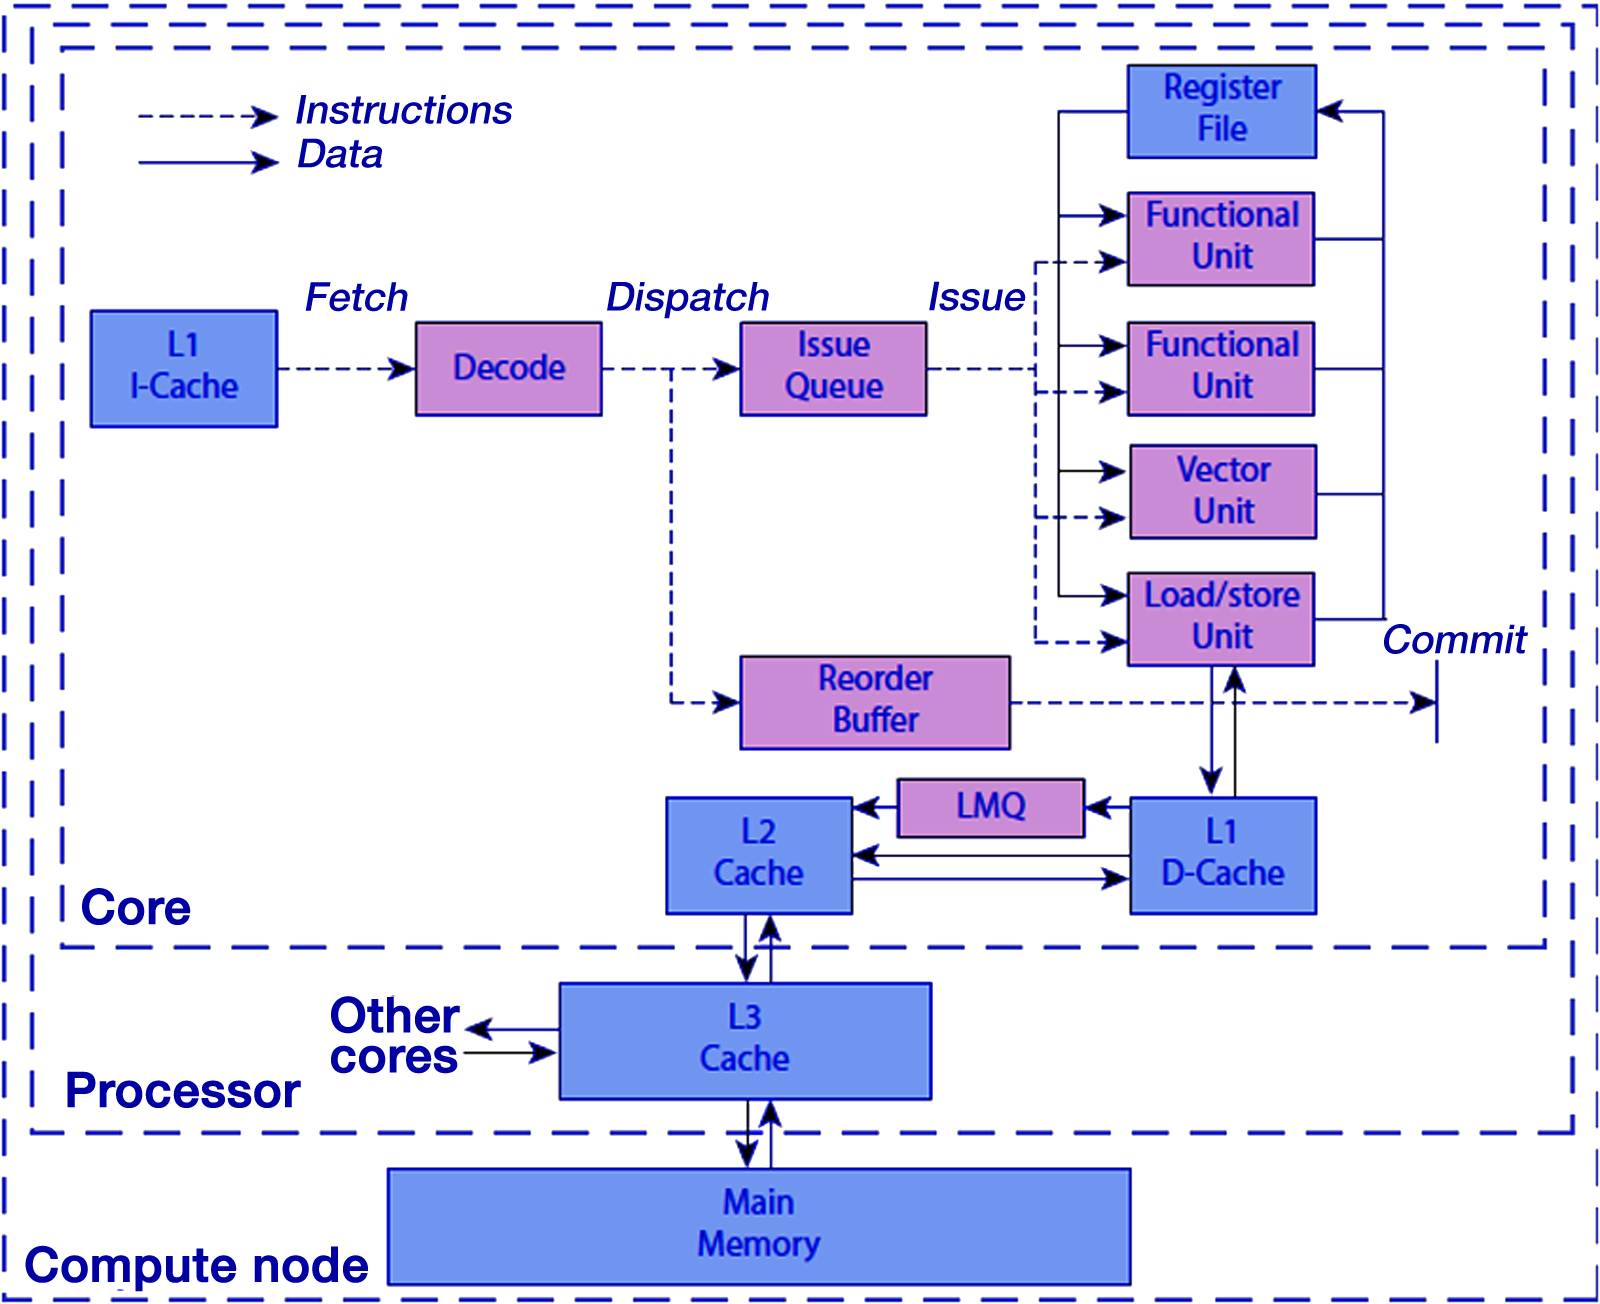 Overview of a compute node modeled in ExaBounds